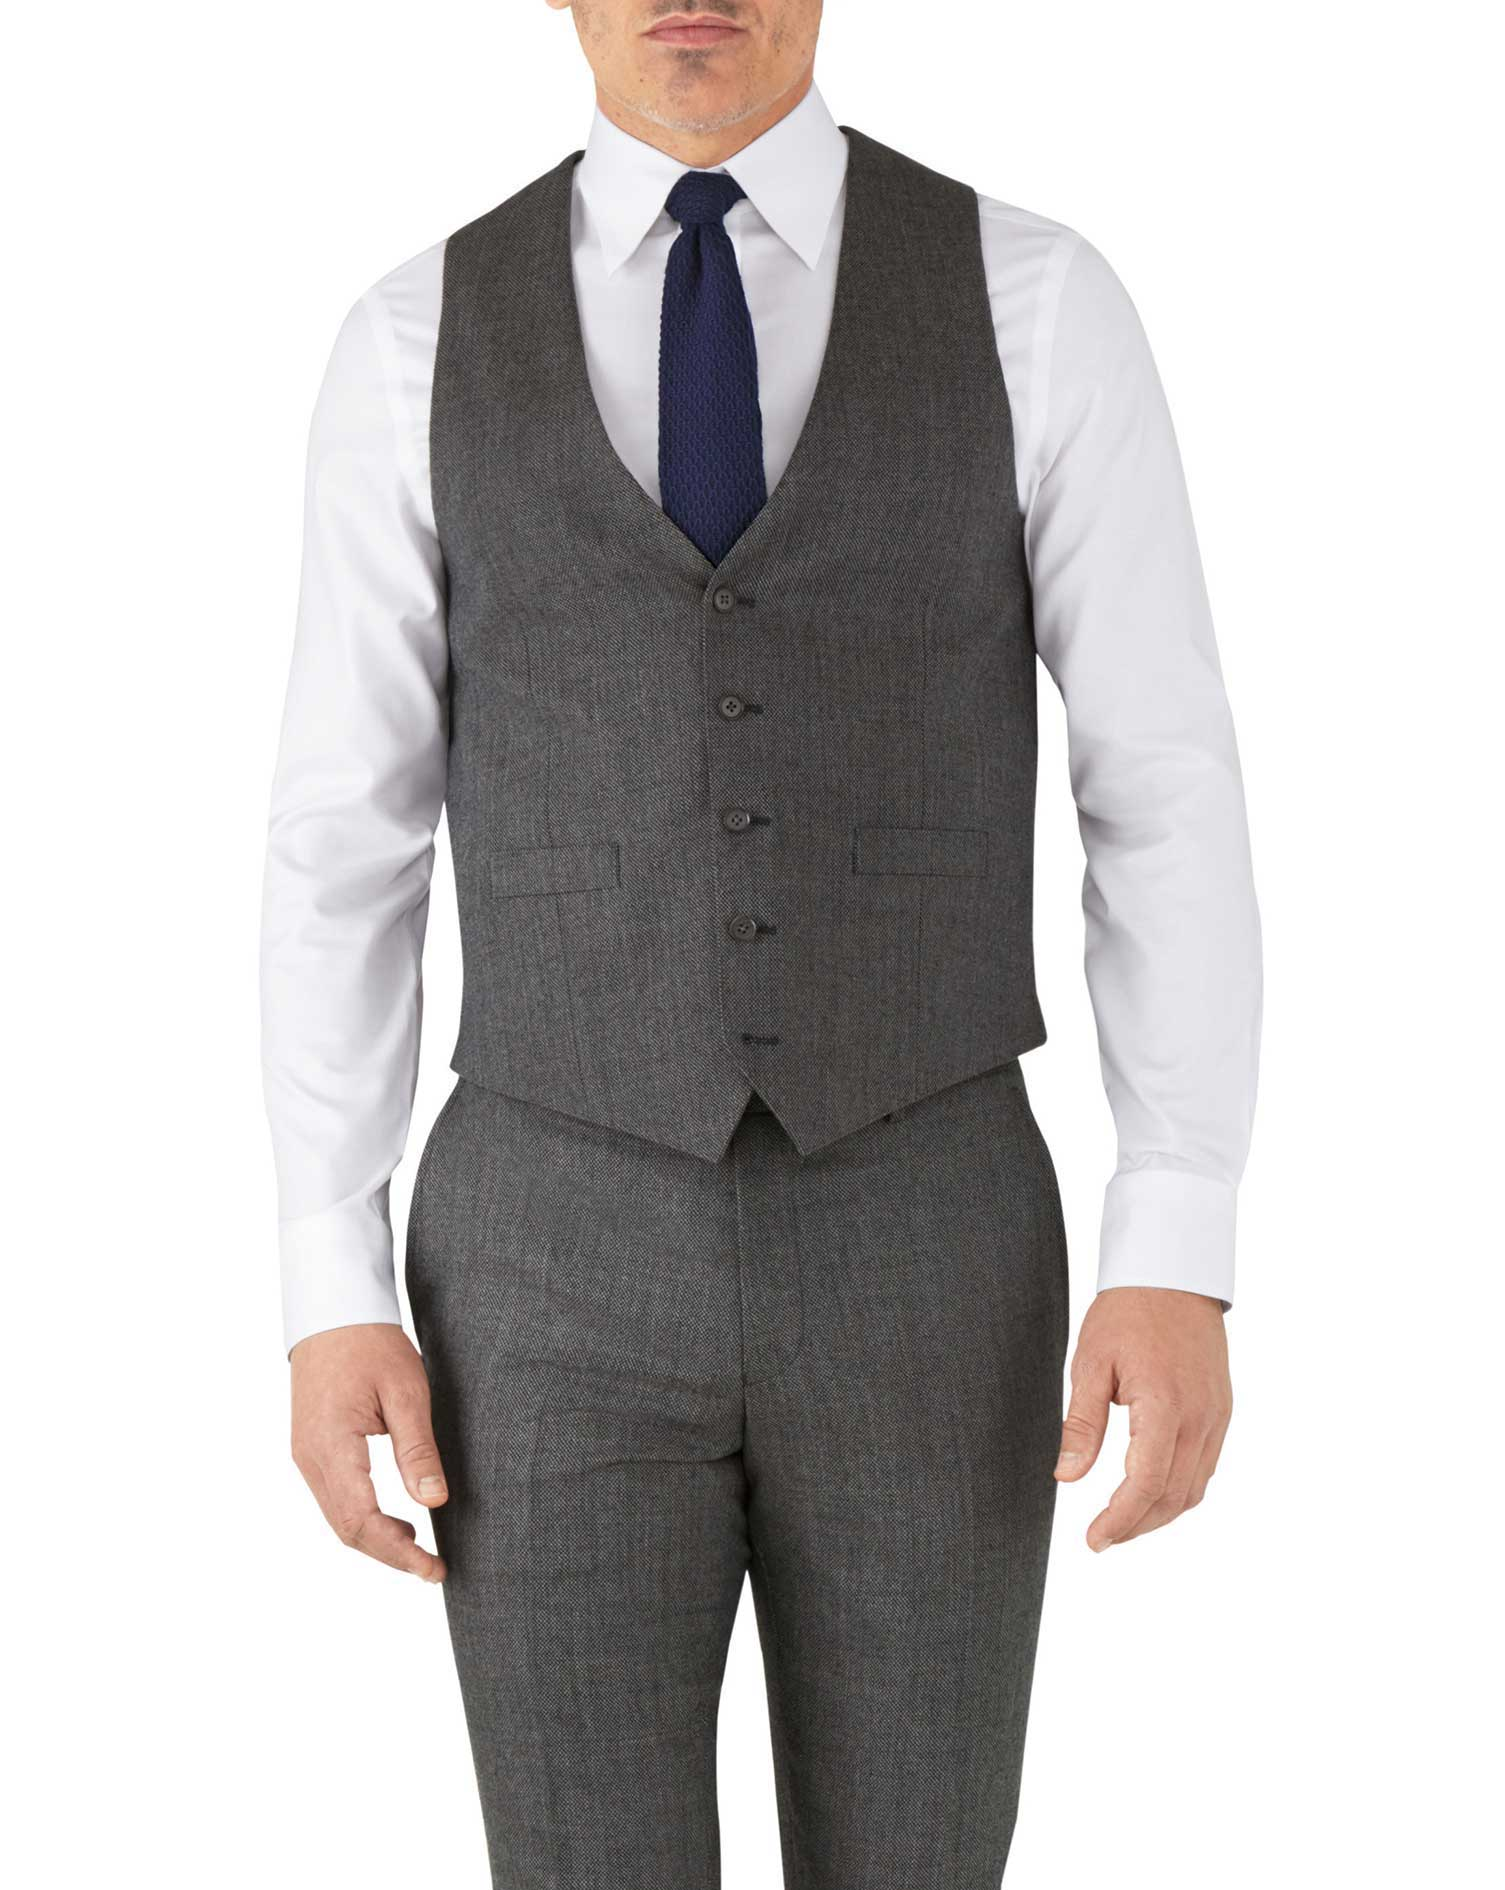 Silver Adjustable Fit Flannel Business Suit Wool Waistcoat Size w36 by Charles Tyrwhitt